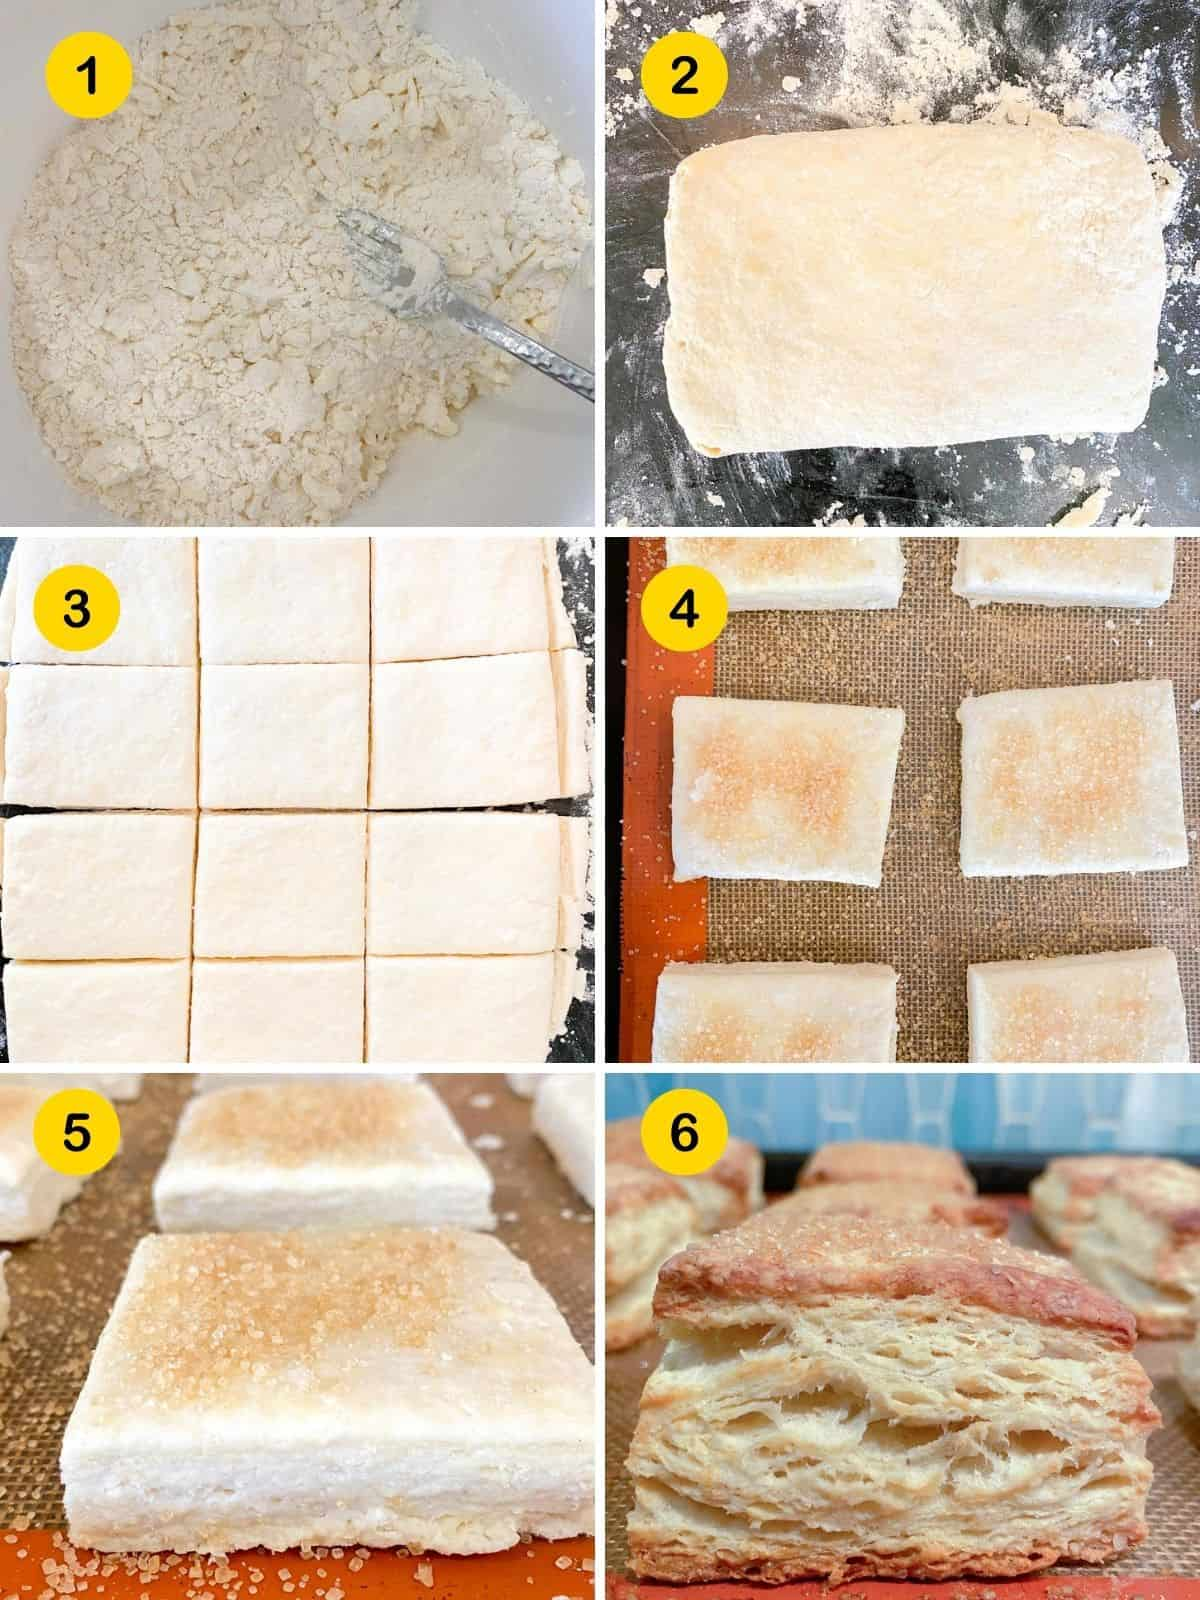 Steps by step instructions for making shortcake biscuits.